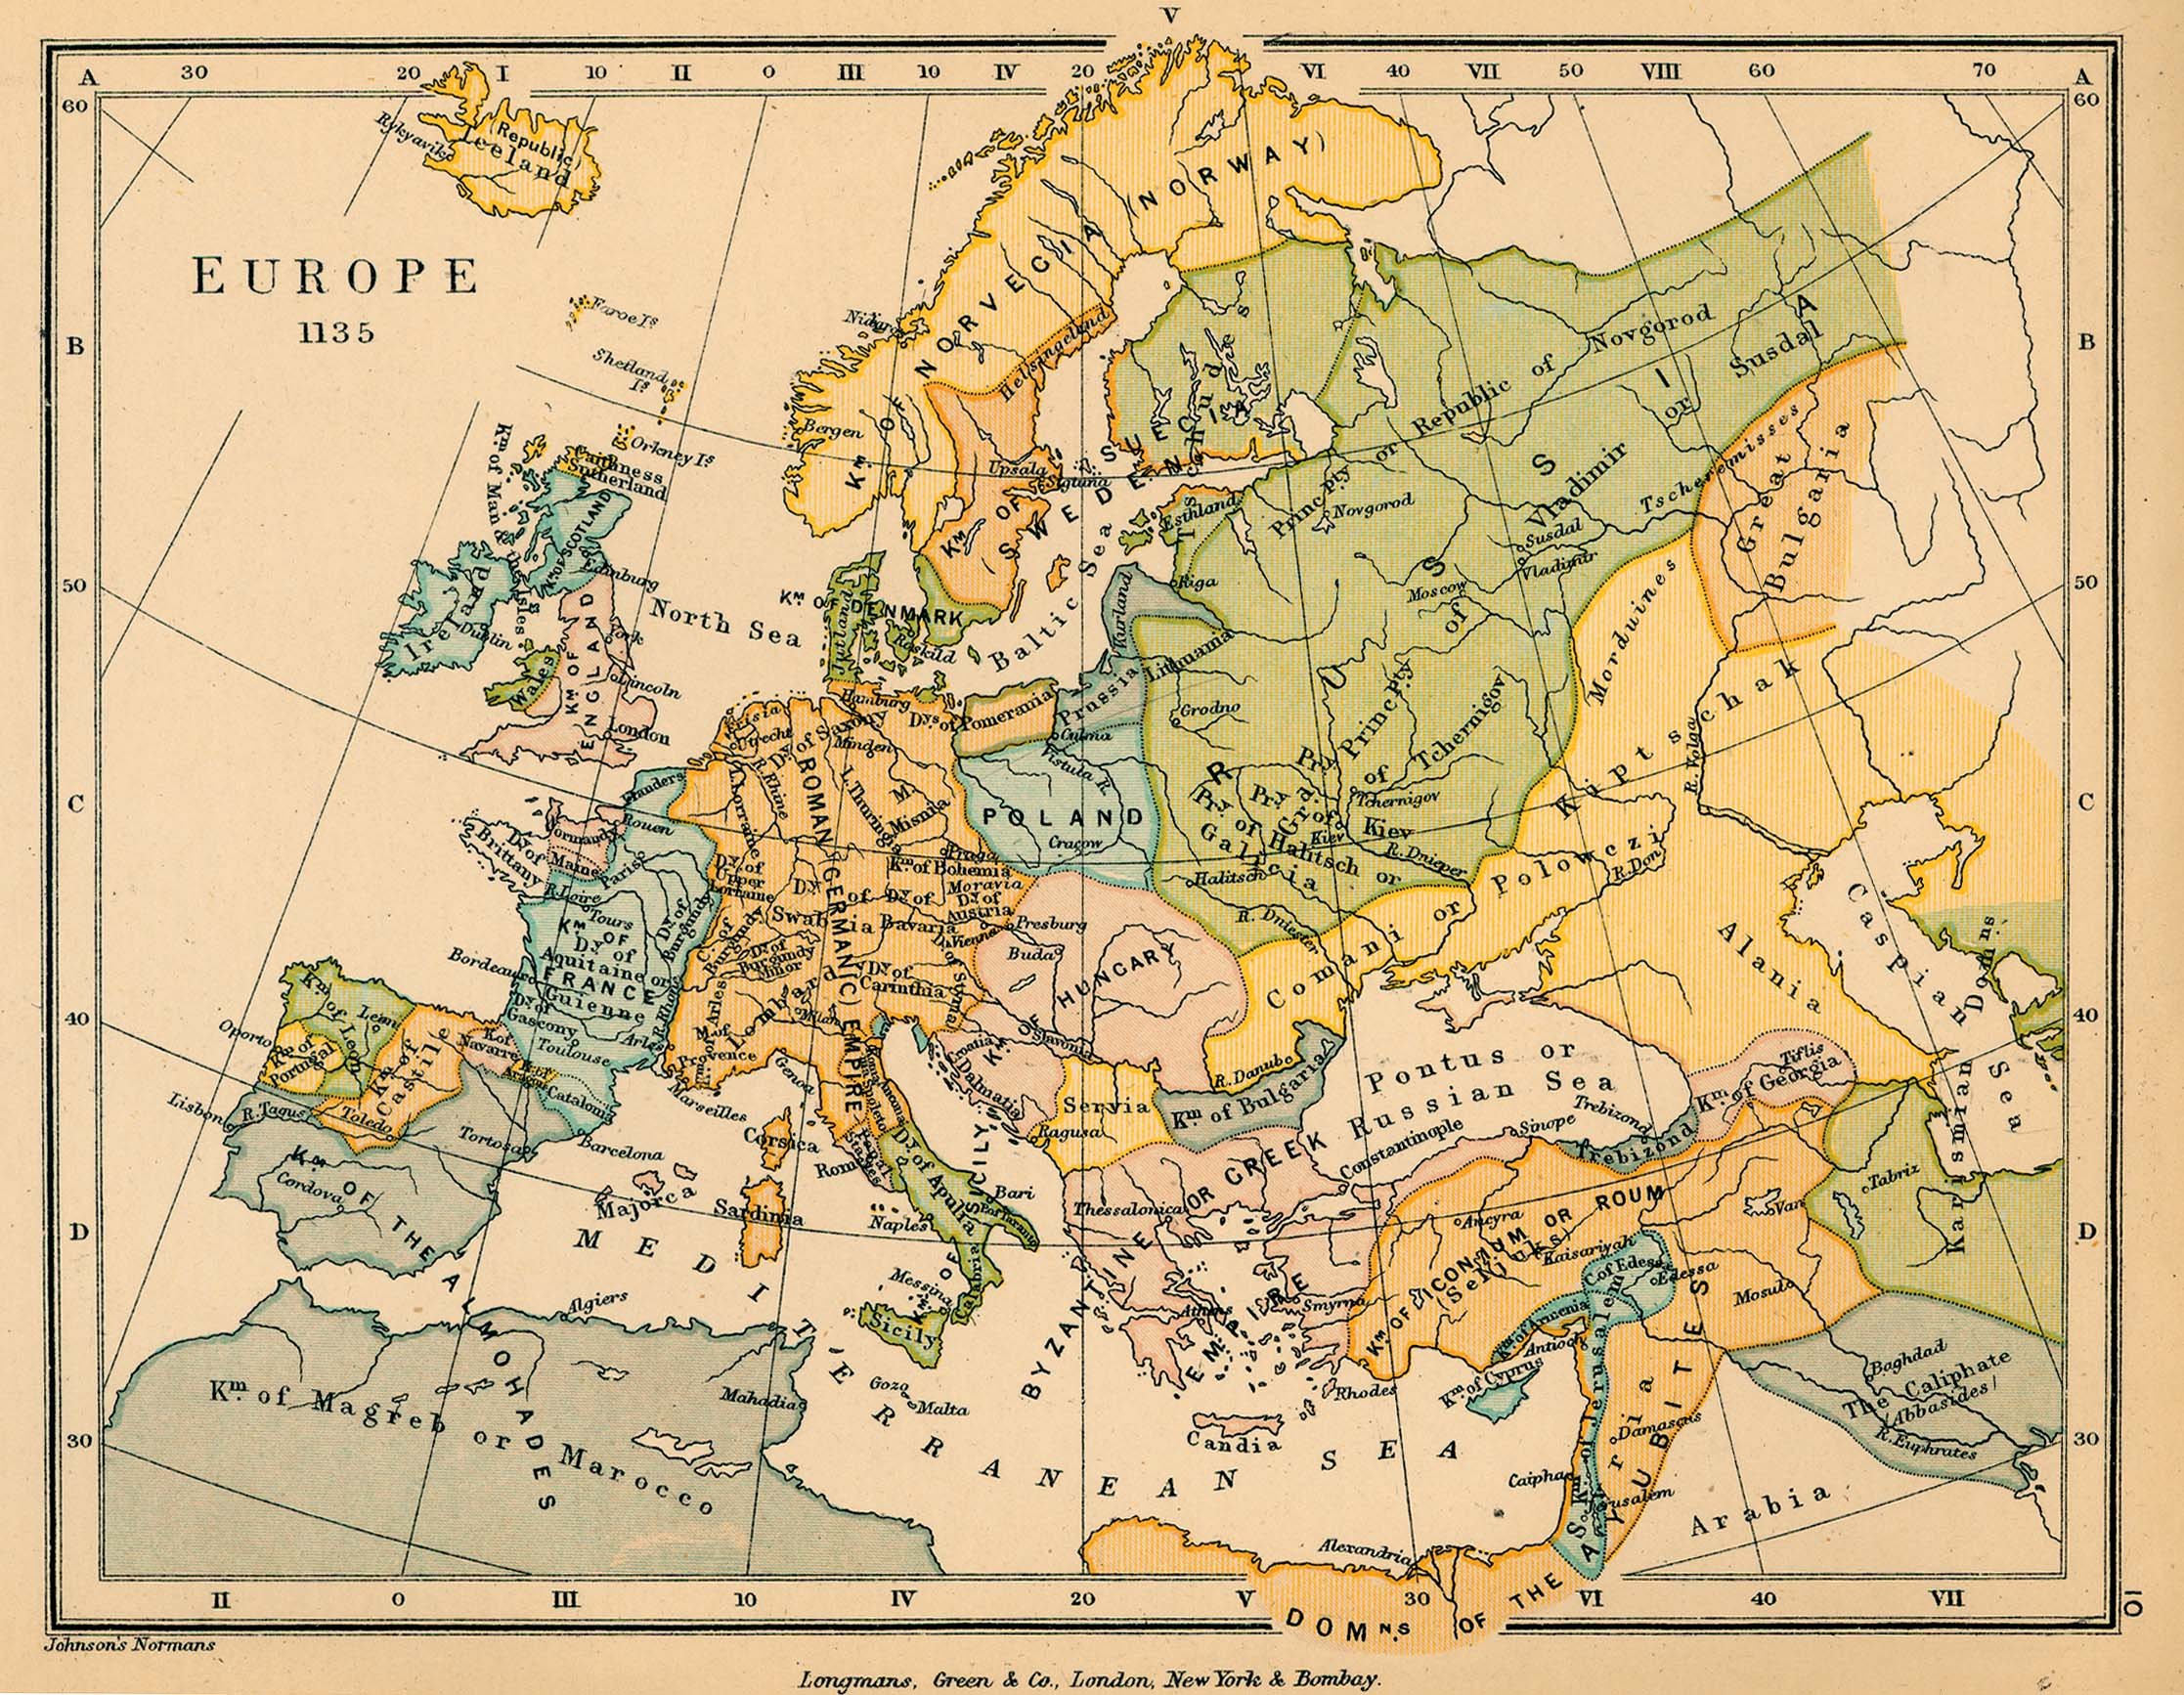 Map of Europe 1135